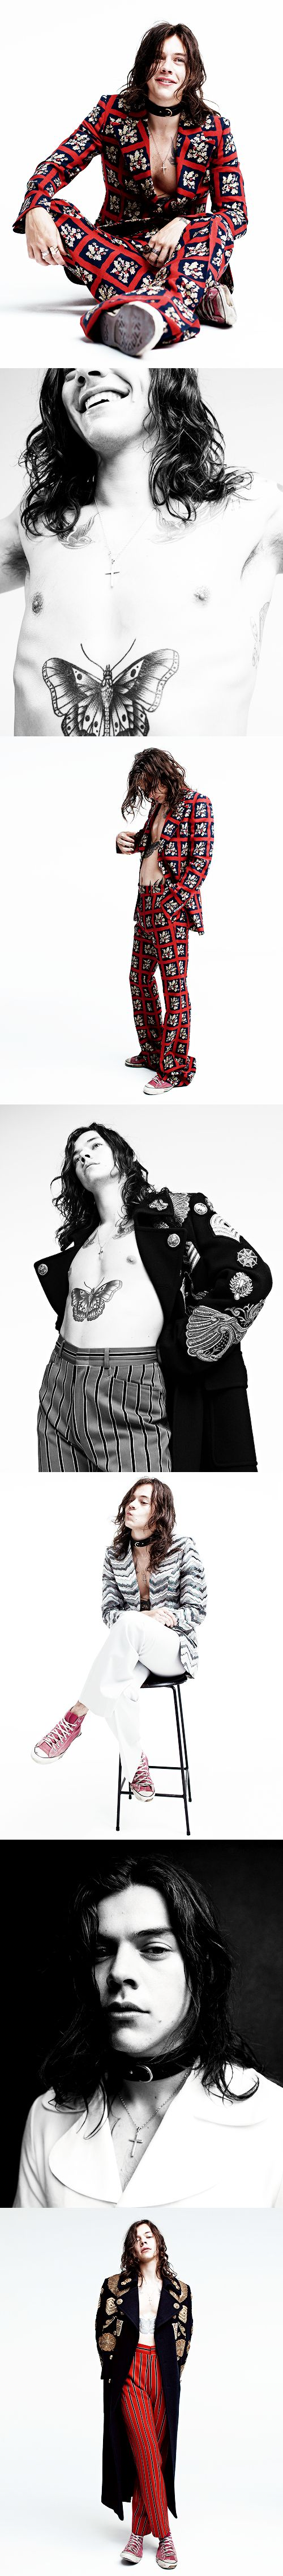 Harry Styles | for Another Man | emrosefeld |